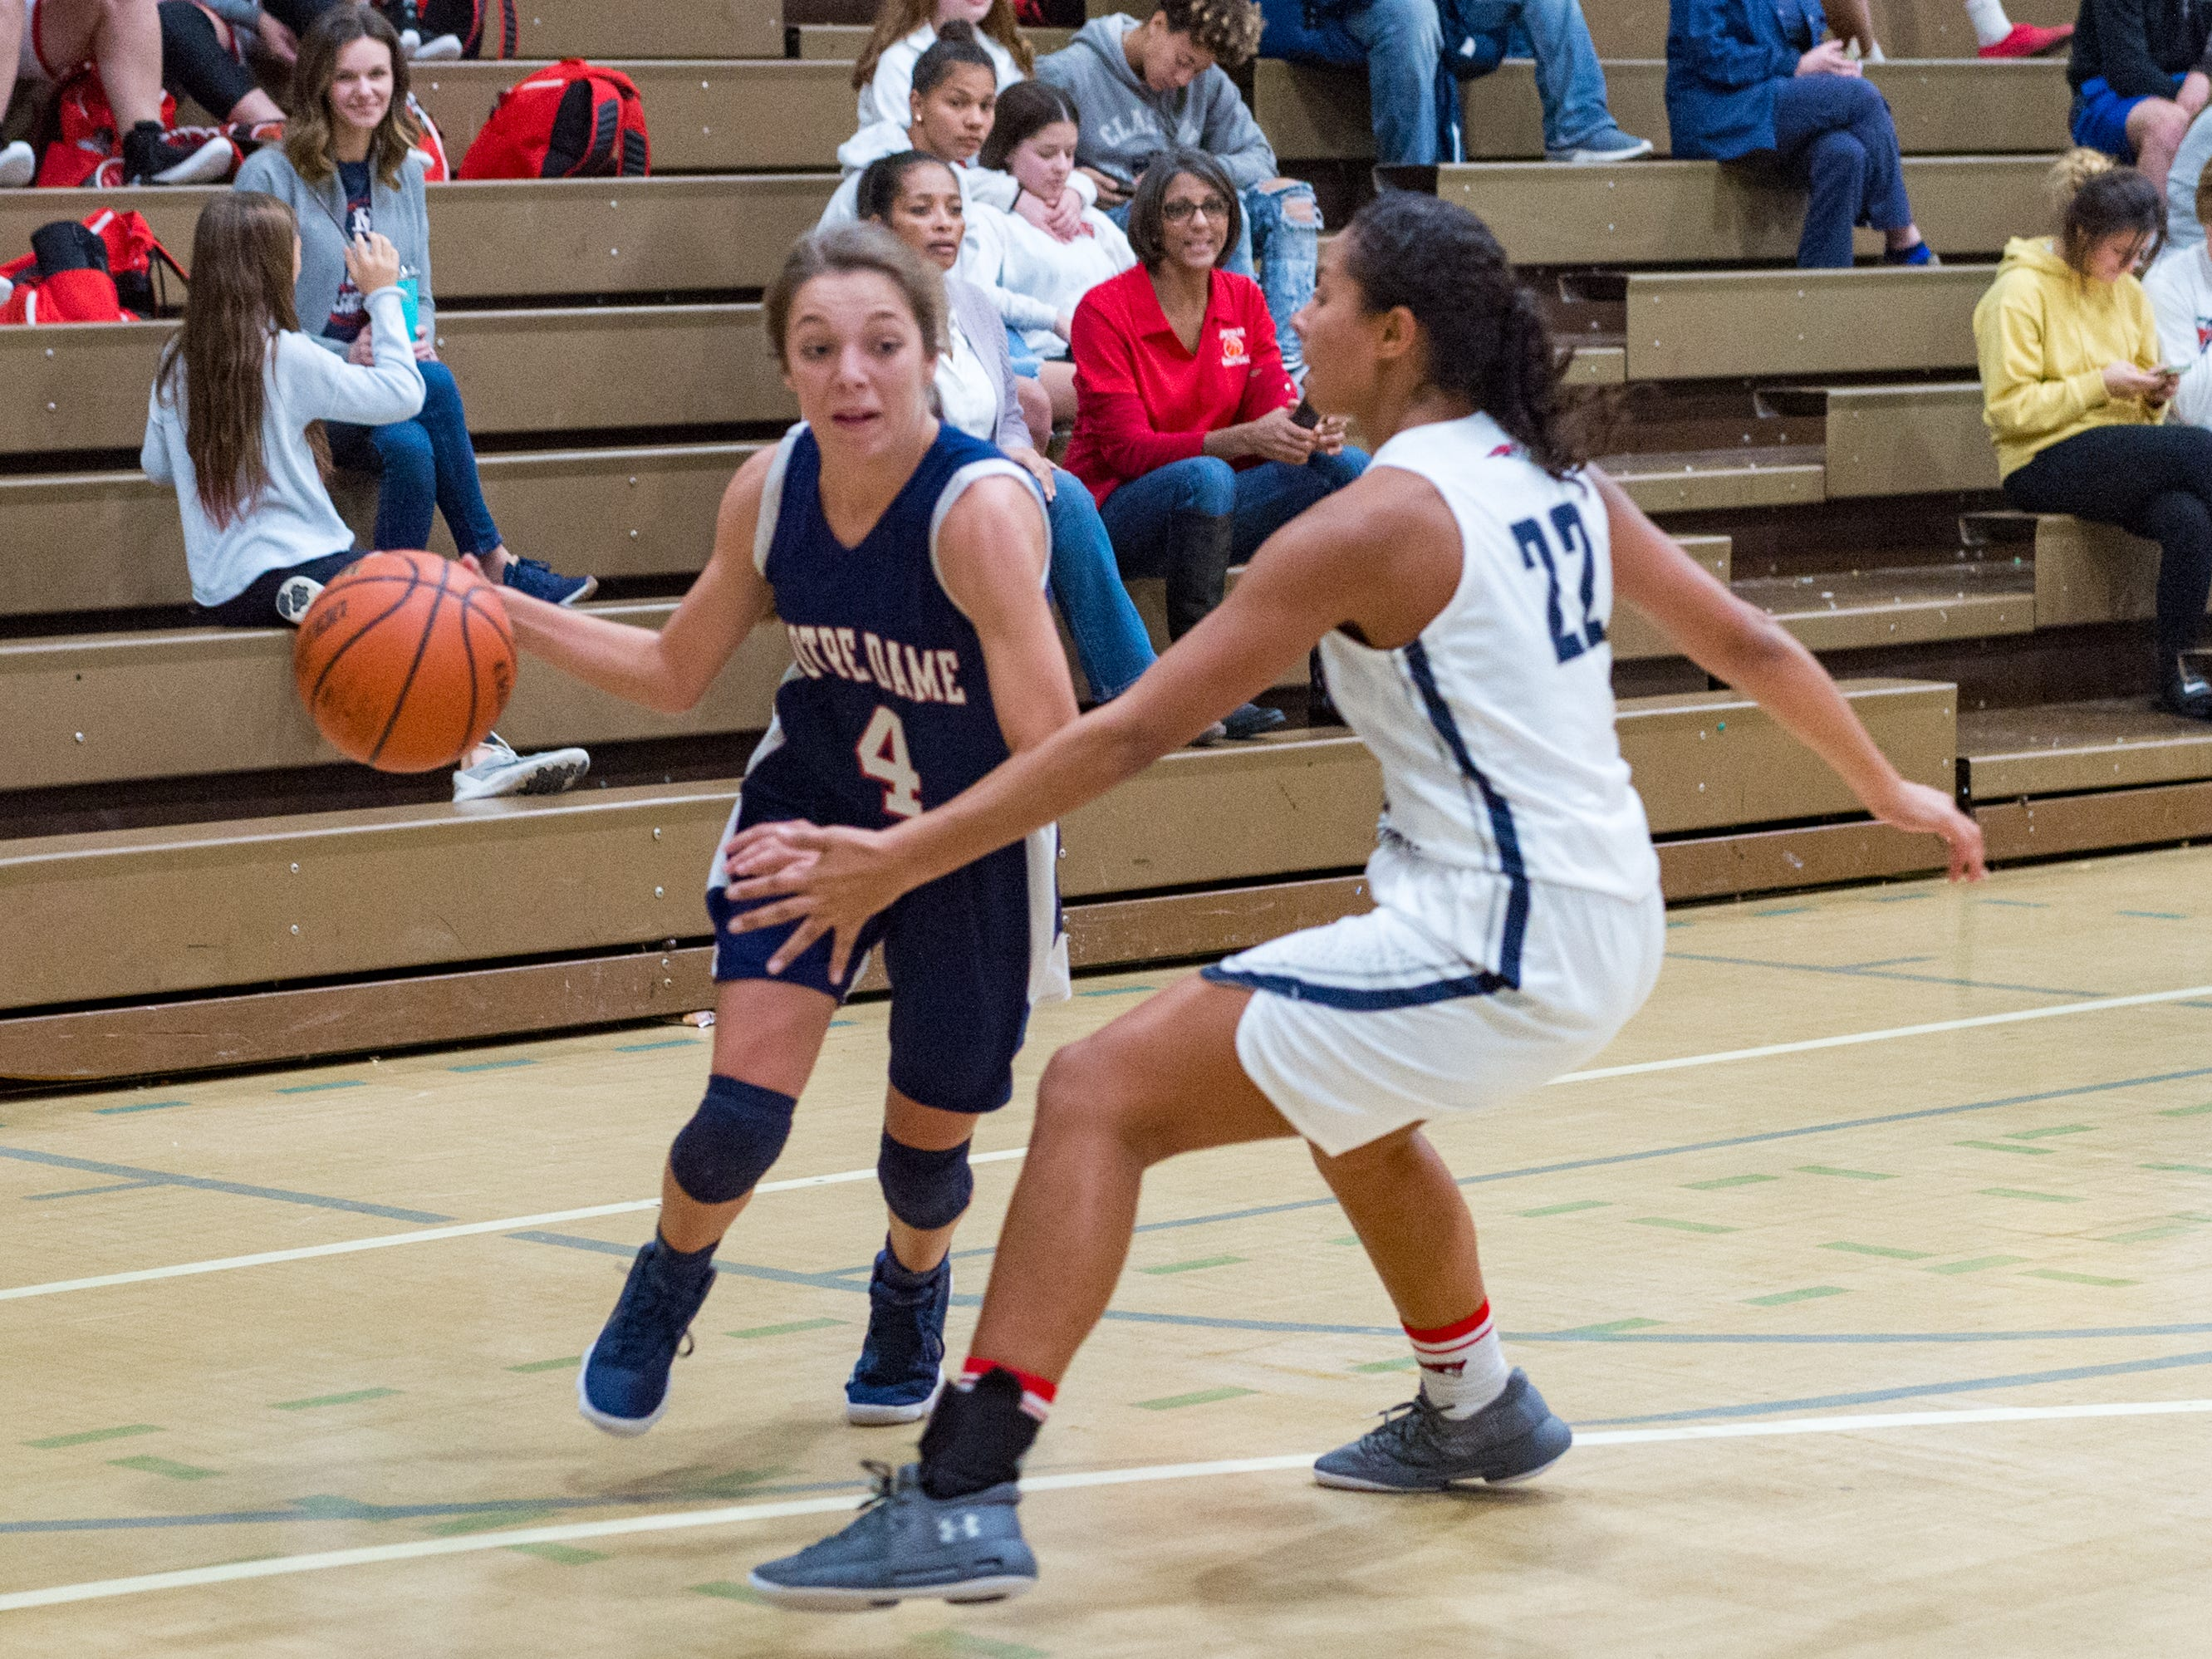 G. Boudreaux drives to the basket as Notre Dame and North Vermillion face off in Girls Basketball Tournament at North Vermillion High School. Tuesday, Nov. 20, 2018.